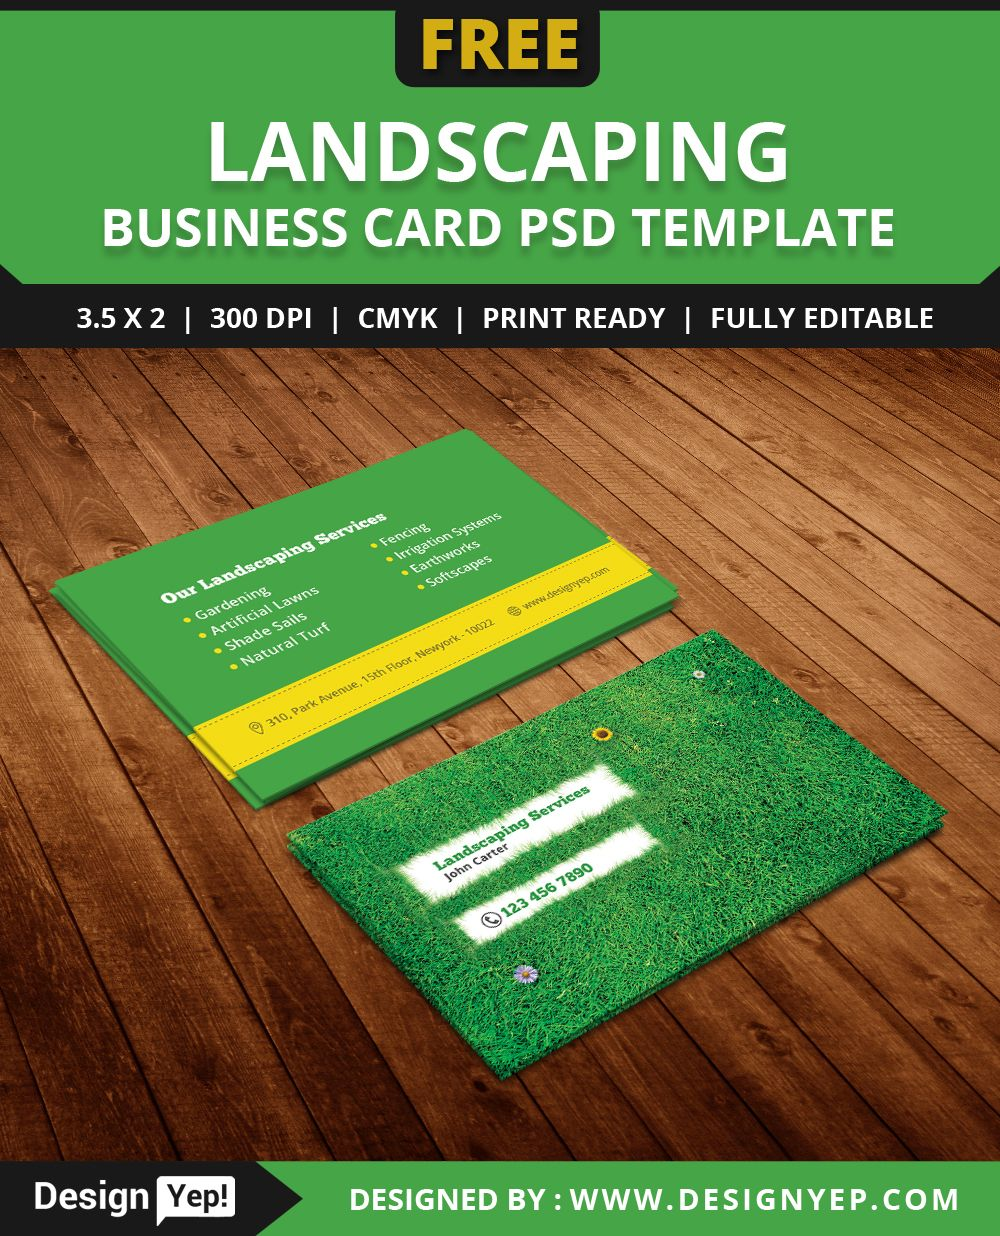 Free landscaping business card template psd free business card free landscaping business card template psd wajeb